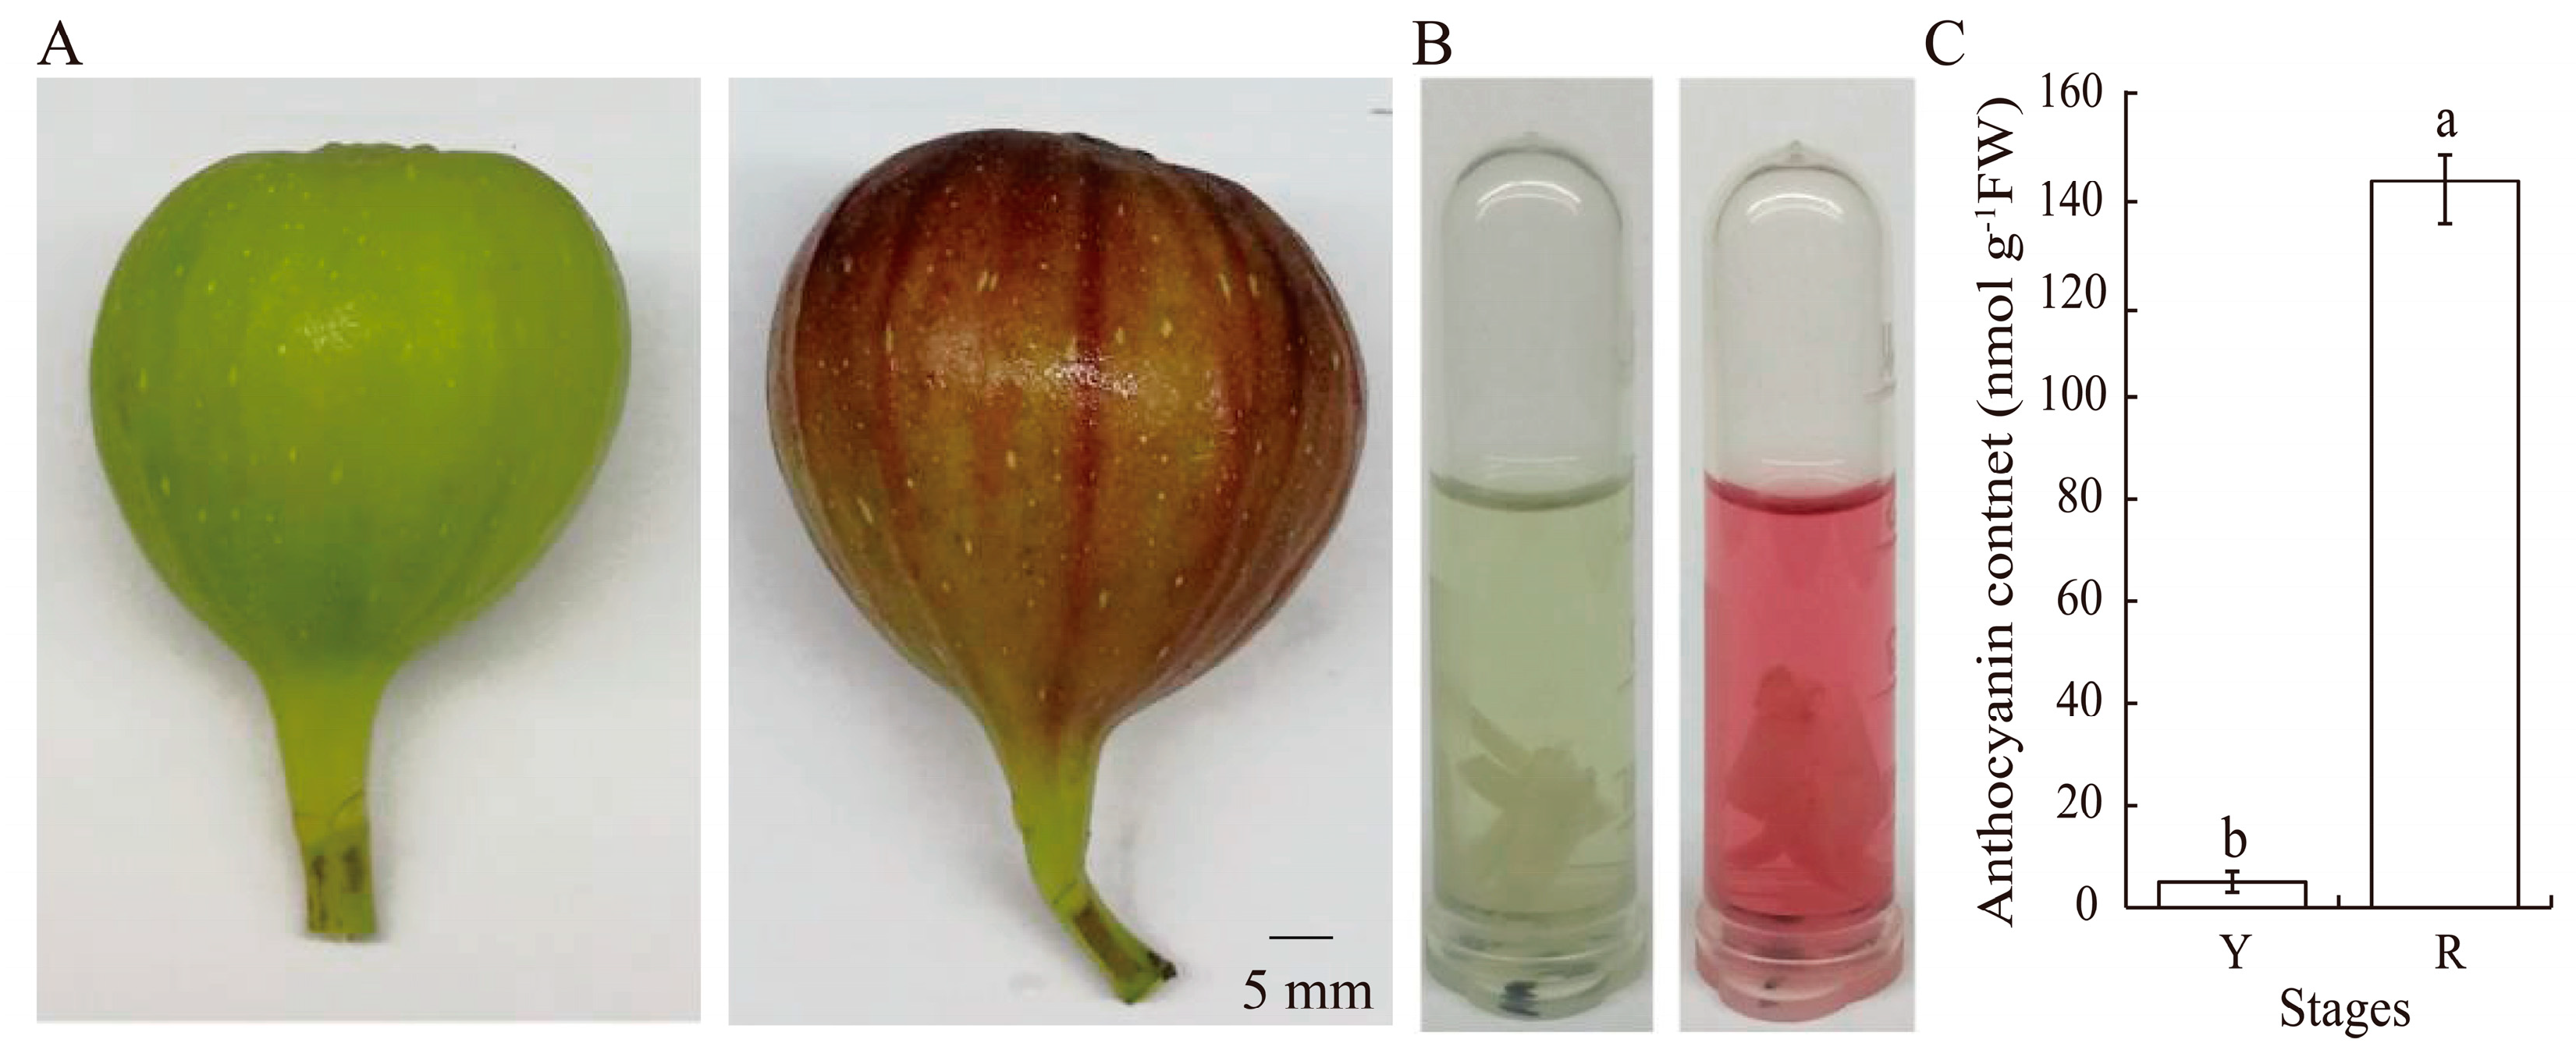 Ijms Free Full Text Transcriptomic Analysis Of Ficus Carica Peels With A Focus On The Key Genes For Anthocyanin Biosynthesis Html